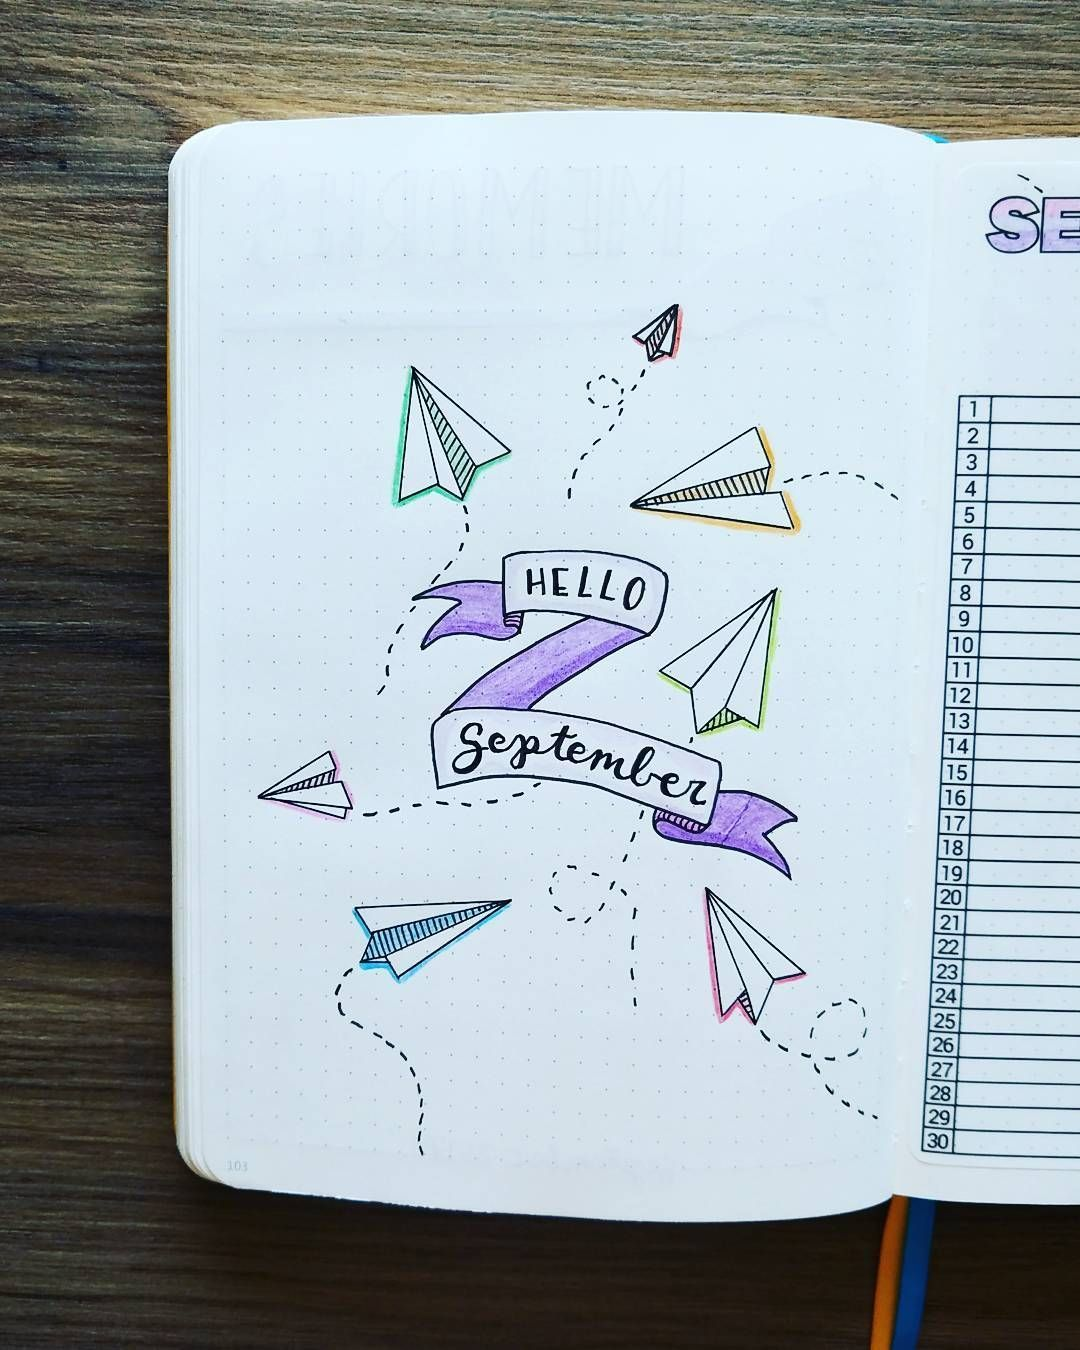 329 vind-ik-leuks, 8 reacties - Micah (@my_blue_sky_design) op Instagram: 'September 2017 - Welcome Page Hello September indeed! August was killer, and there were some…' #septemberbulletjournalcover